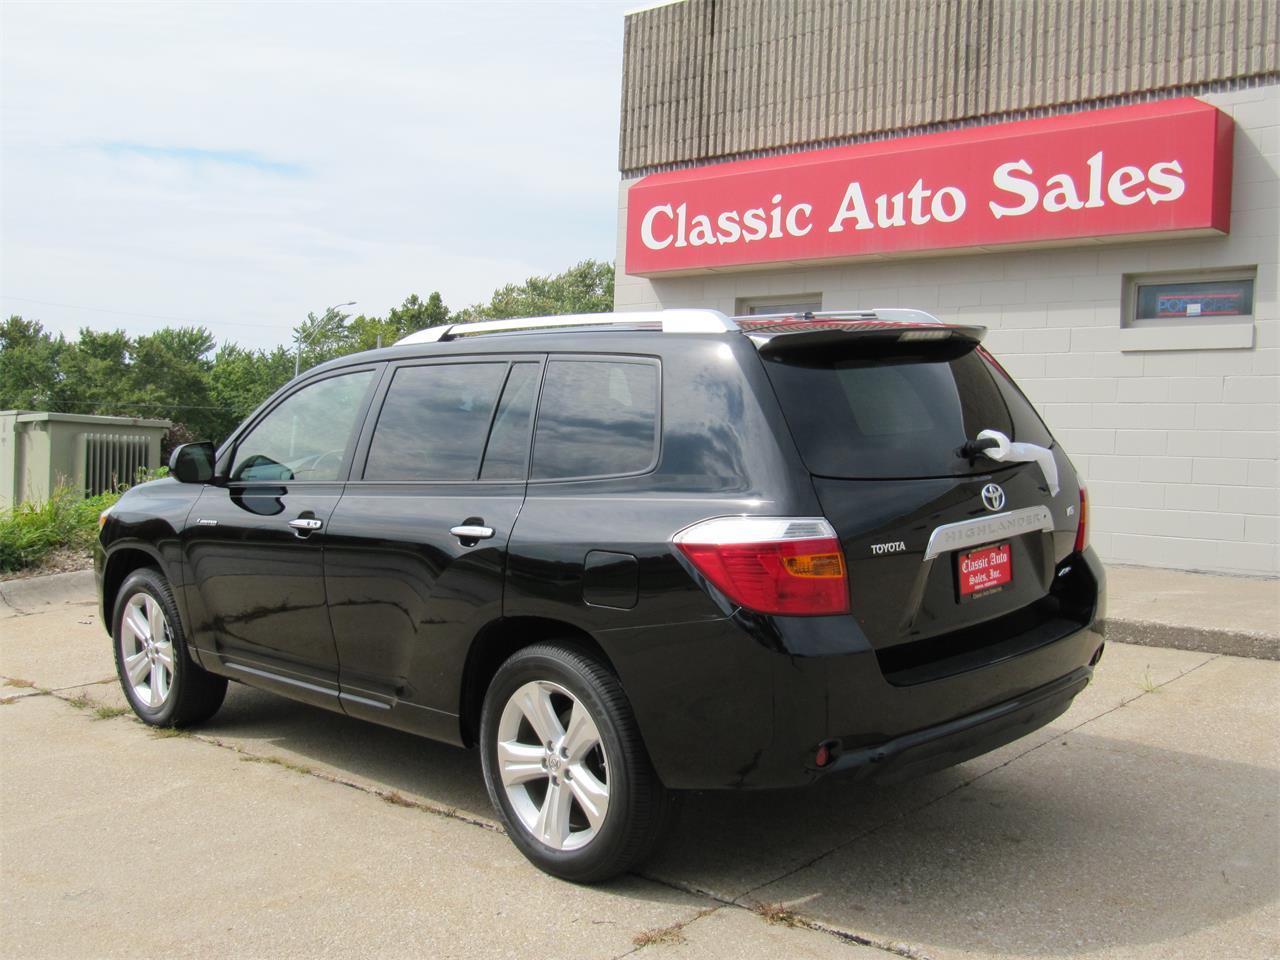 2009 Toyota Highlander (CC-1256995) for sale in Omaha, Nebraska